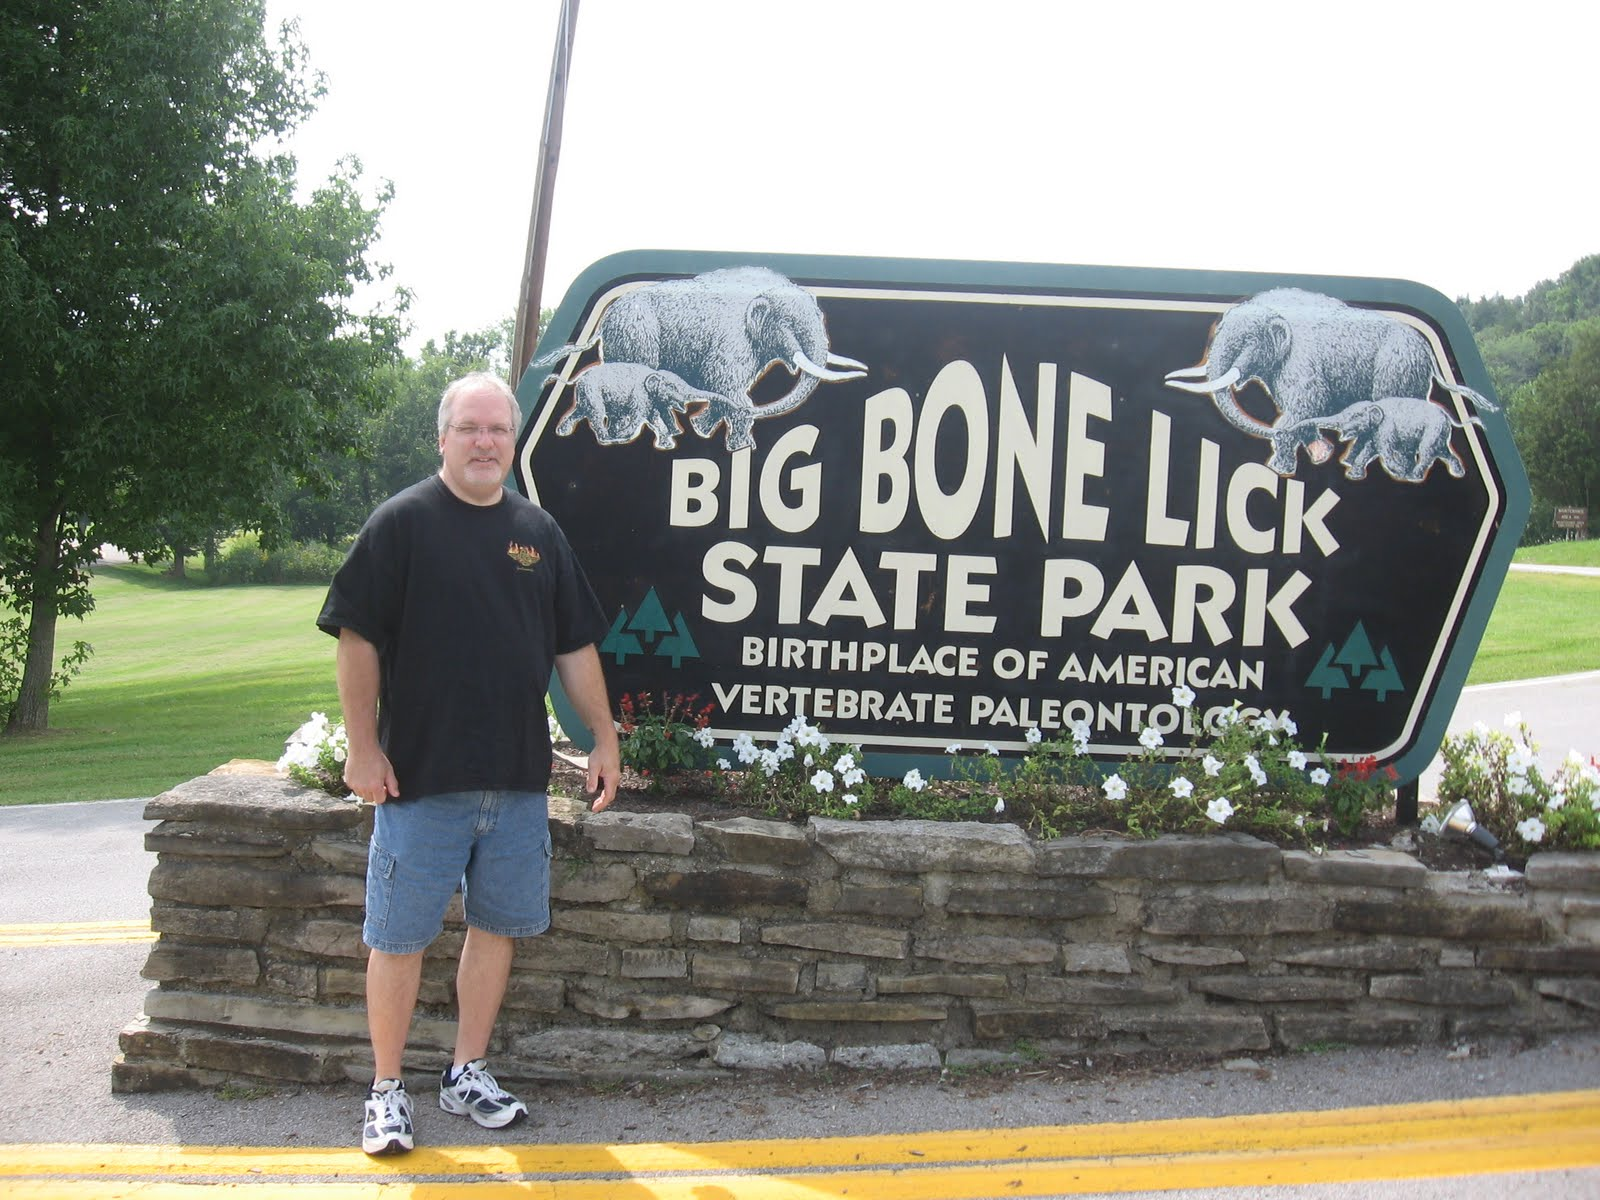 Big bone lick state park kentucky lodging